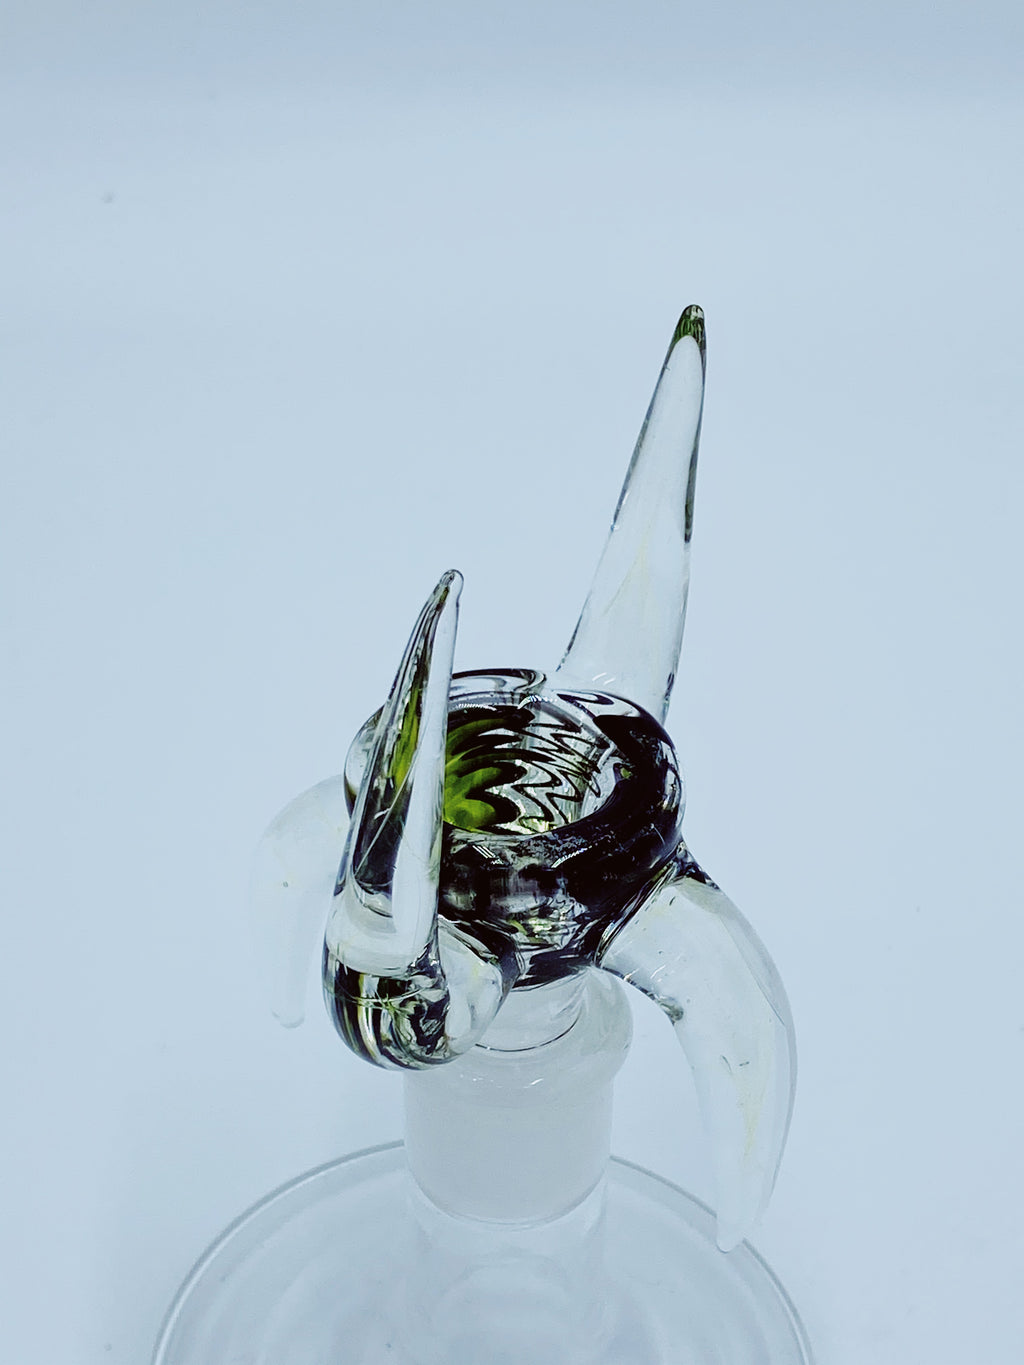 Kobb Glass 18mm Full Uv Quad Horn Bowl